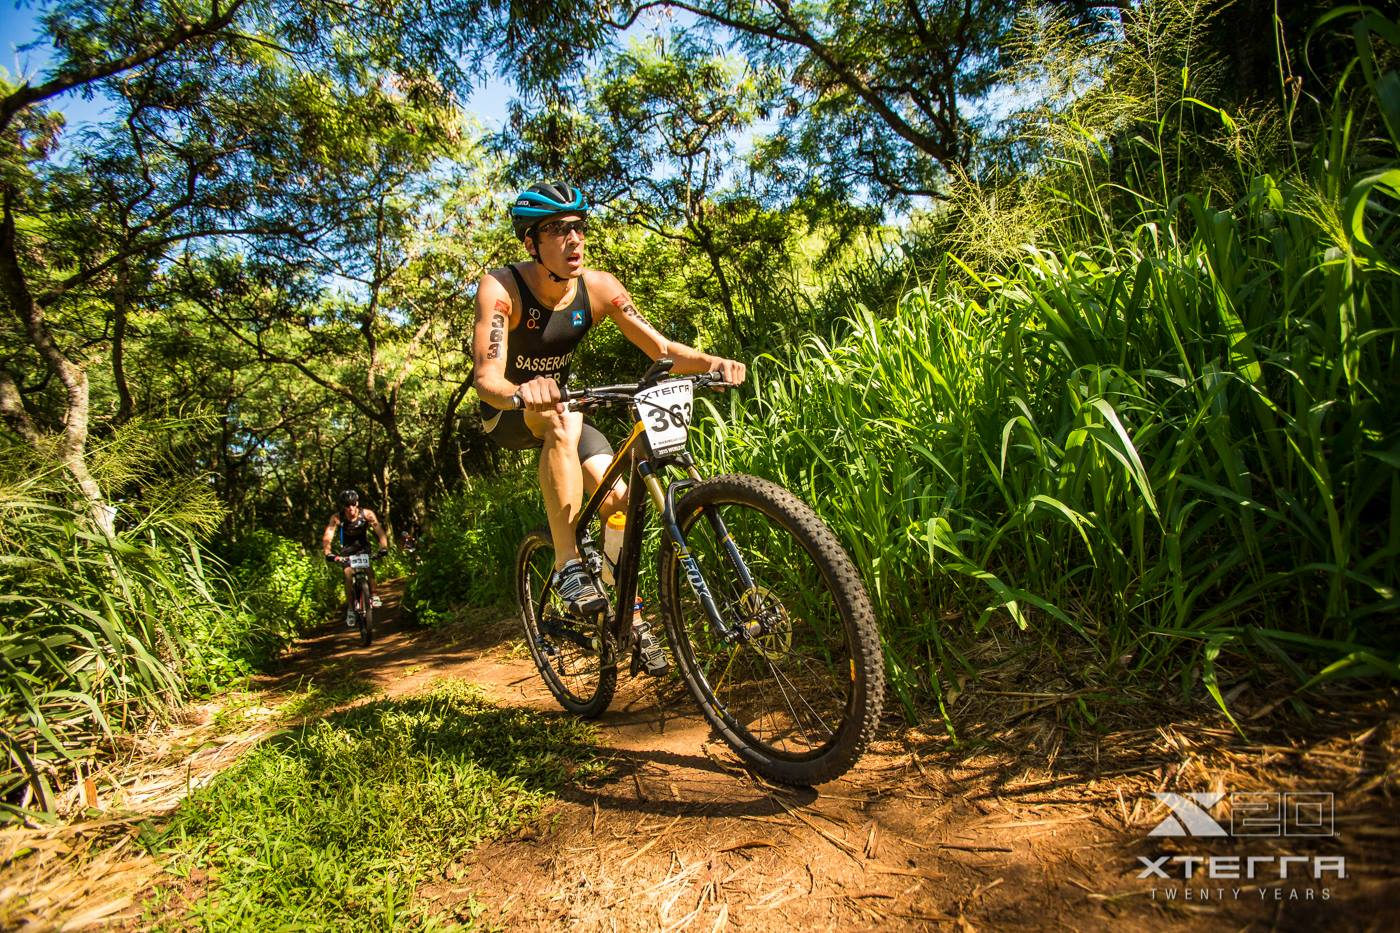 XTERRA_WORLD_CHAMPIONSHIP_2015_00030